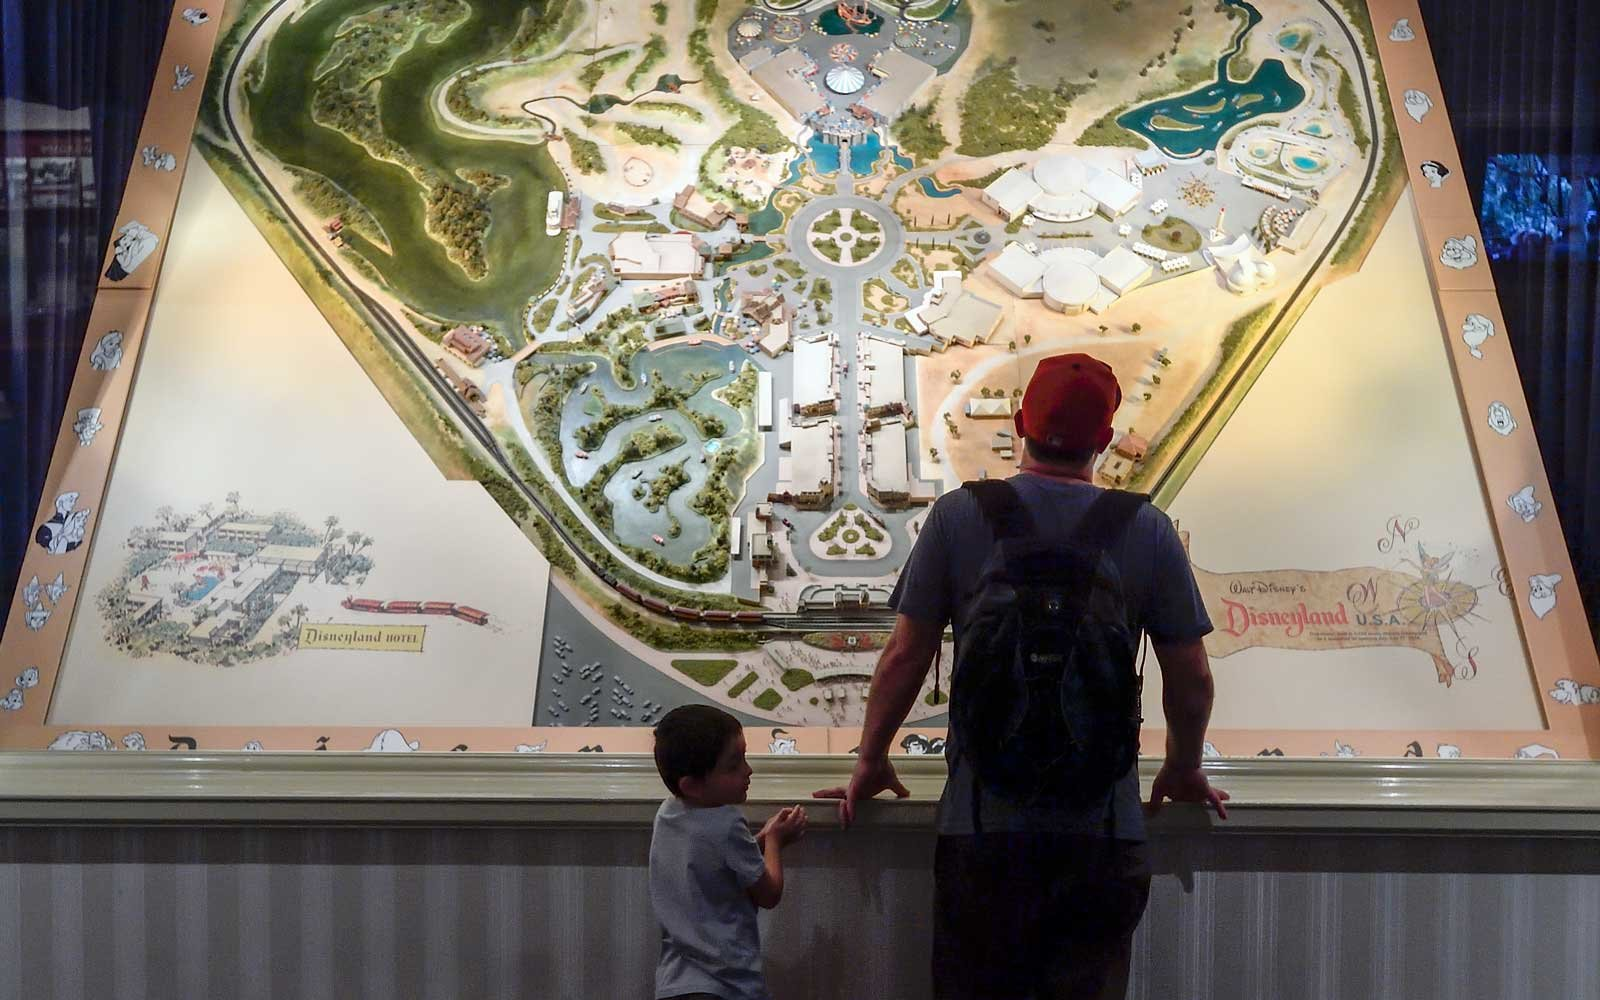 Visitors in the lobby of the Opera House on Main Street, U.S.A. check out a giant model of Disneyland